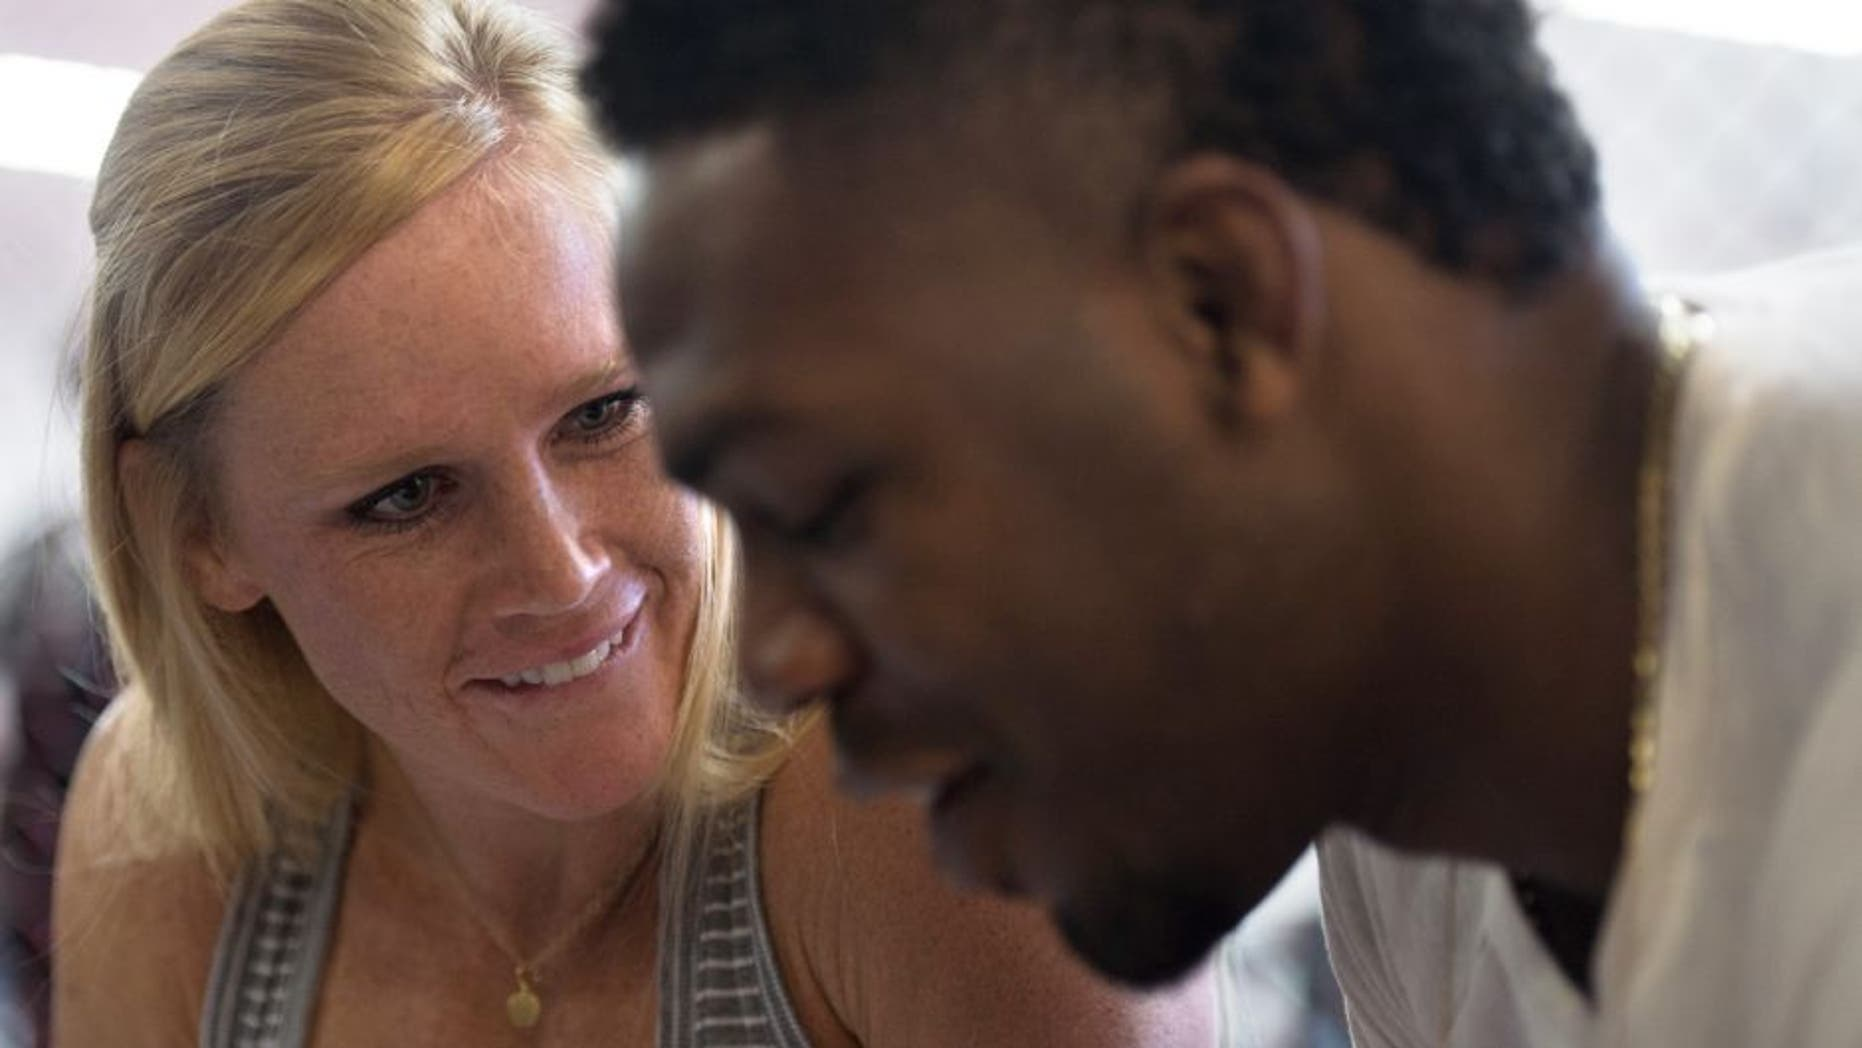 ALBUQUERQUE, NM - OCTOBER 31: (L-R) Holly Holm and Jon Jones sign autographs for fans during the Jackson Wink MMA Academy Grand Opening at Jackson's Mixed Martial Arts & Fitness on October 31, 2015 in Albuquerque, New Mexico. (Photo by Brandon Magnus/Zuffa LLC/Zuffa LLC via Getty Images)